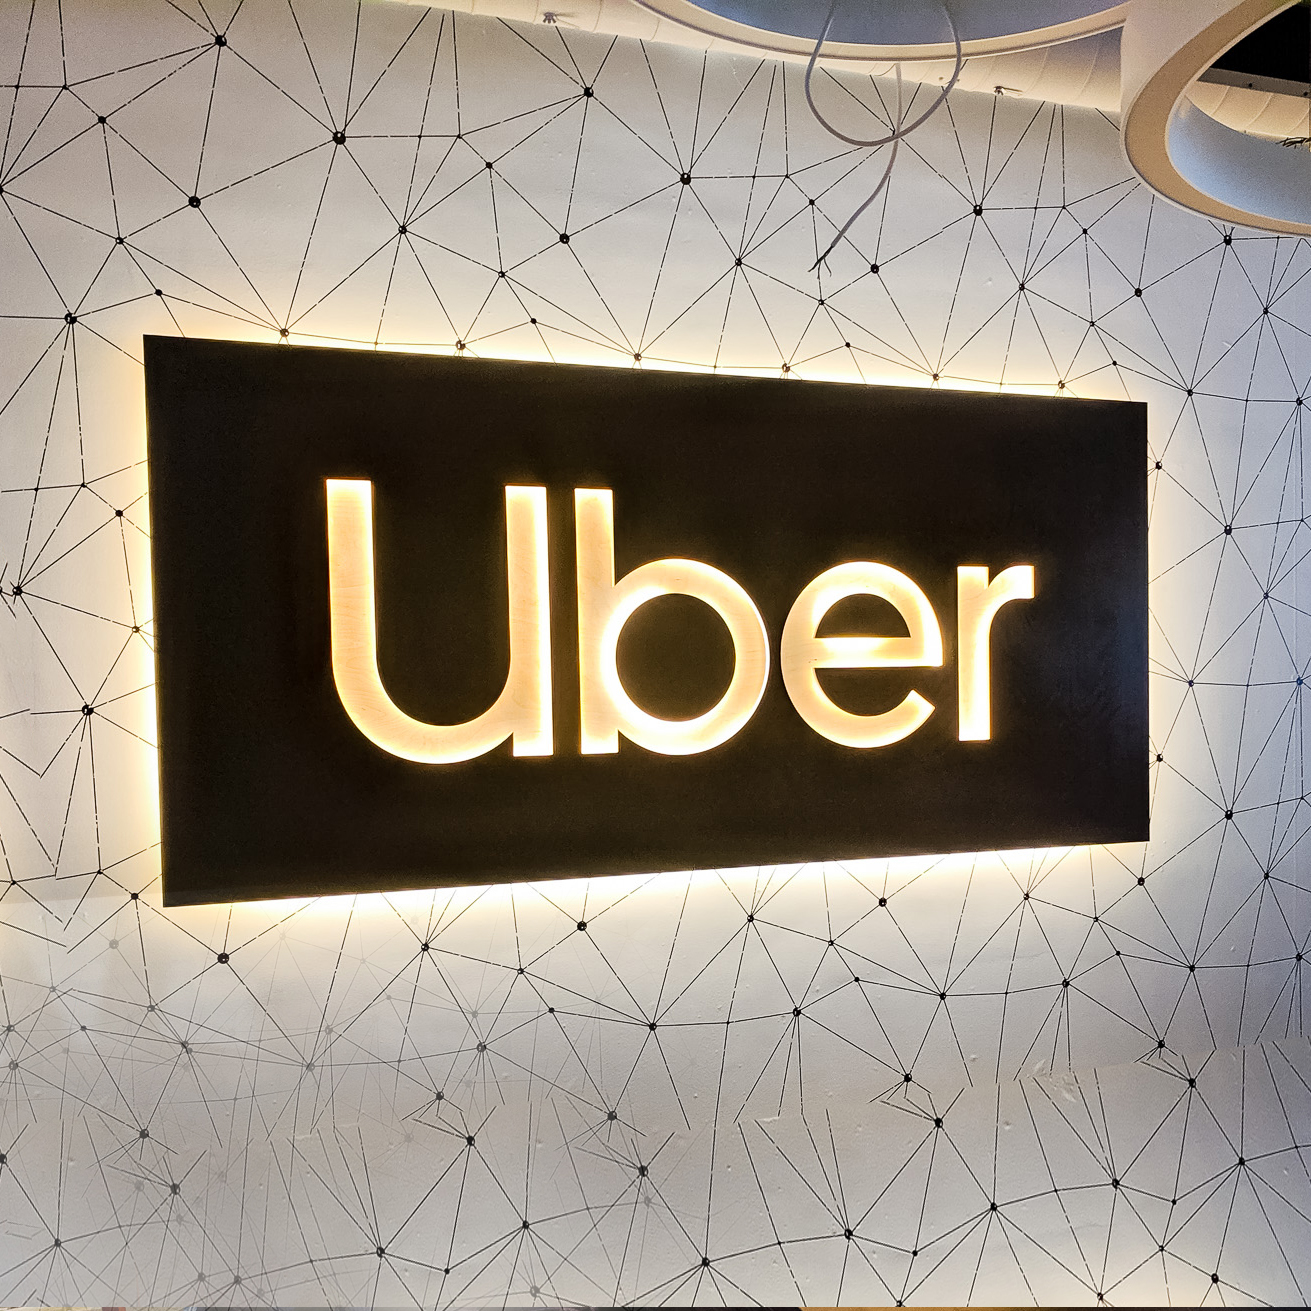 Illuminated black wood lobby sign with warm light on geometrical wallpaper for Uber, an American multinational transportation network company..